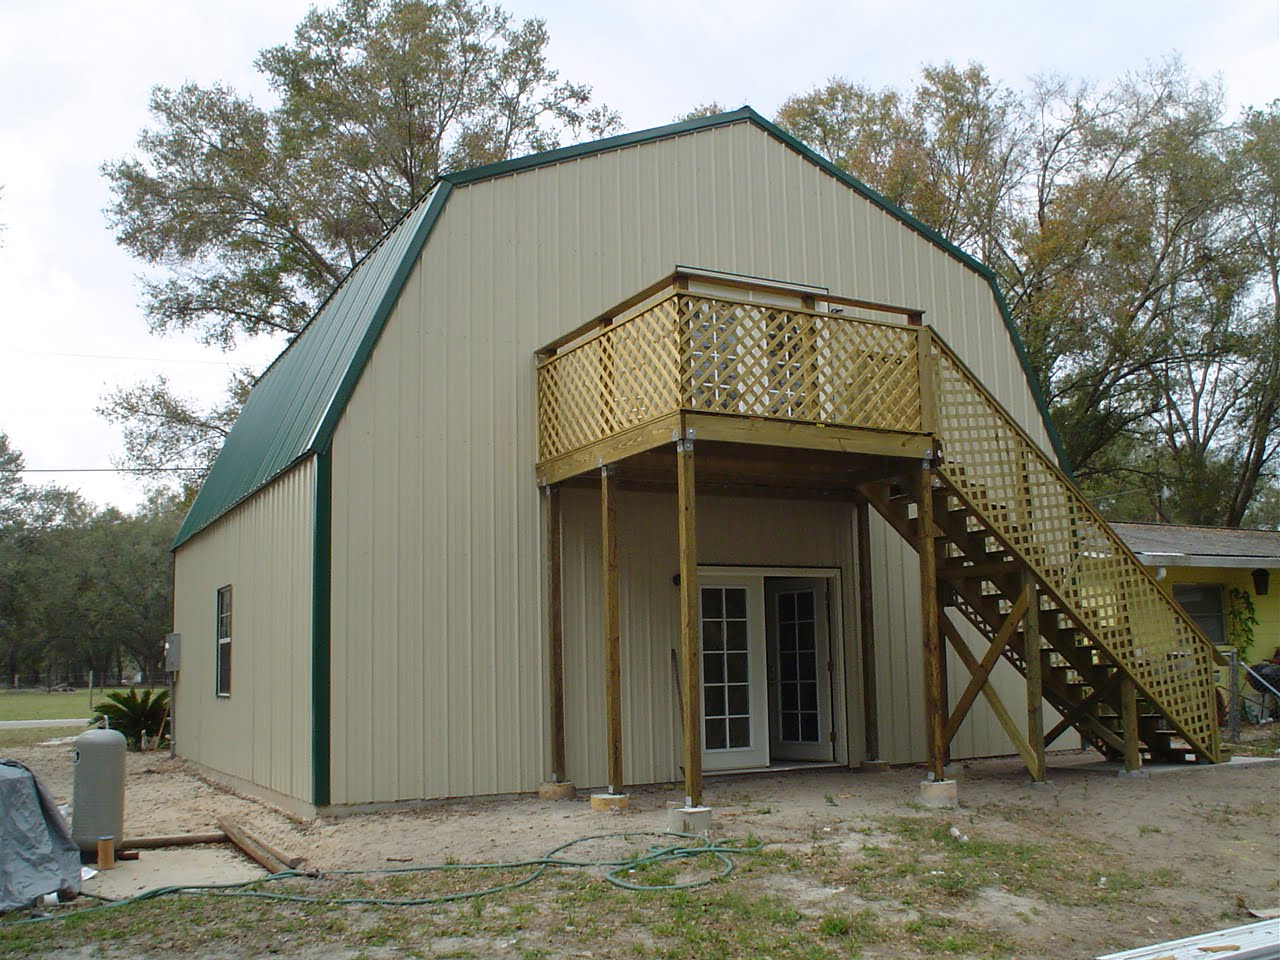 steel frame gambrel type homes starting from $19,950 (hq pictures